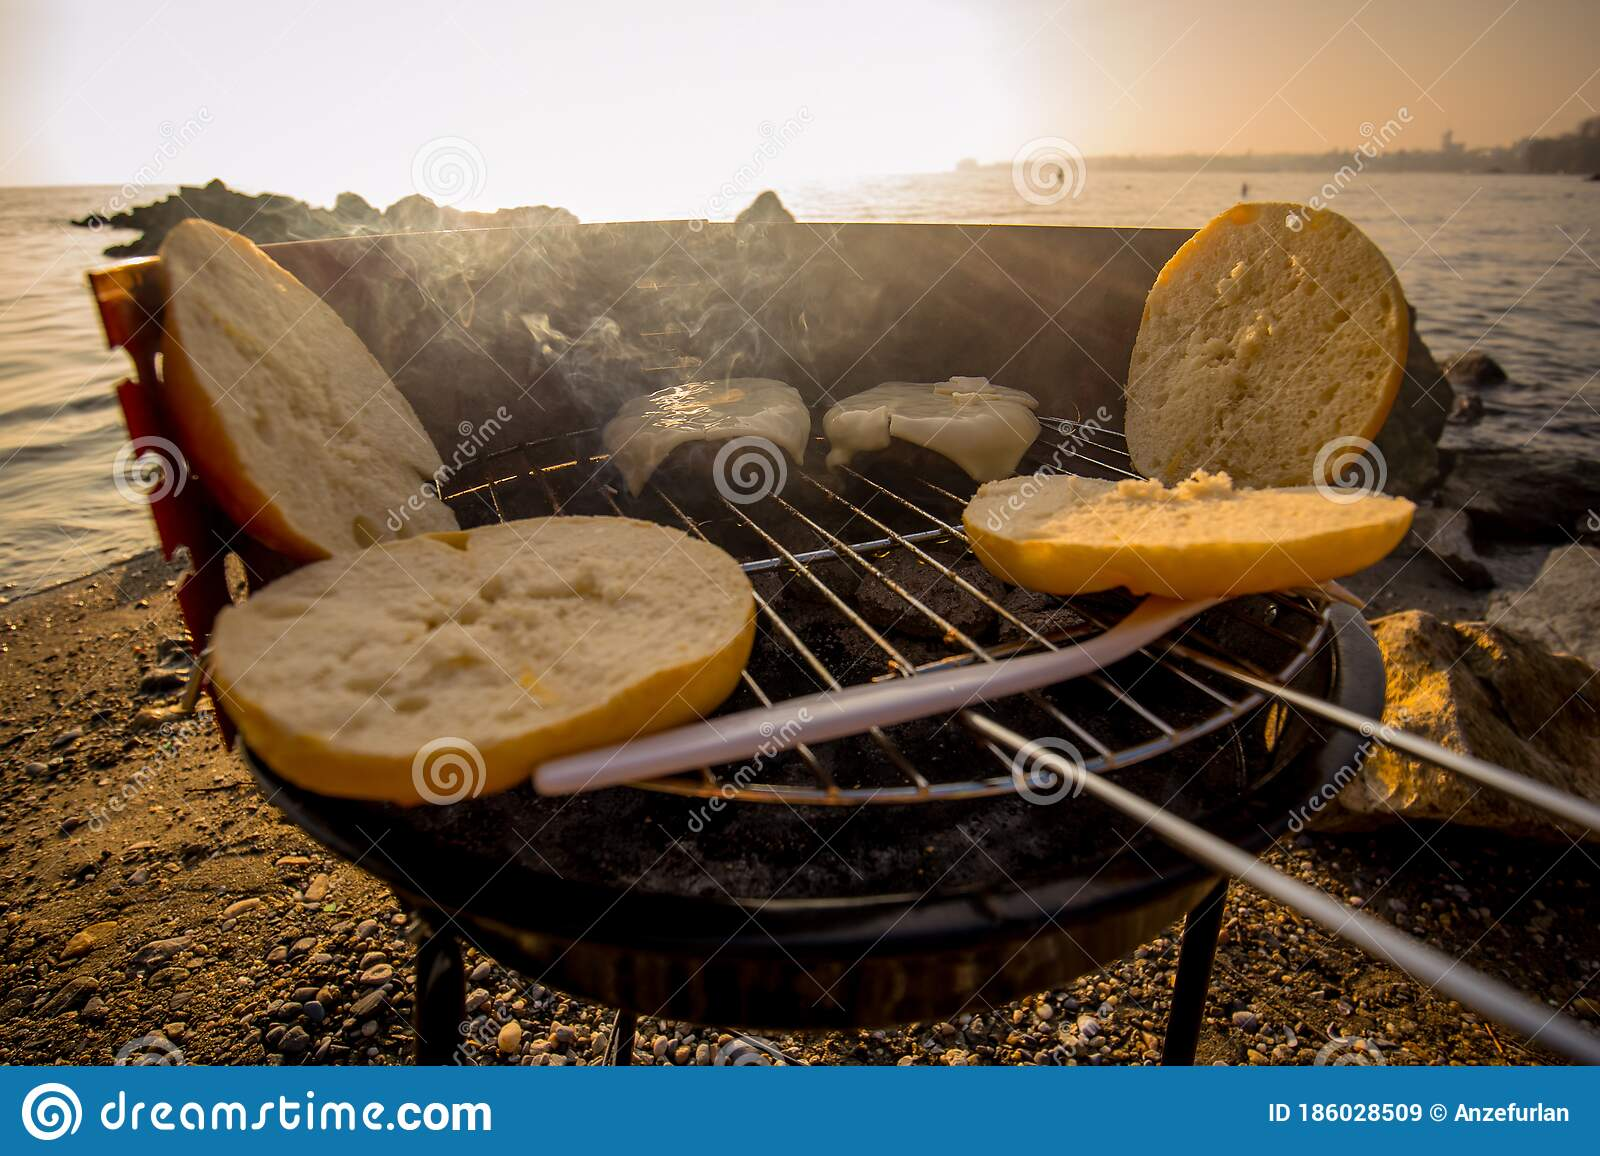 Grilling Burgers On A Small Metal Portable Charcoal Grill On The Shores Of Lac Leman In Switzerland During Early Winter Evening Stock Image Image Of Nature Grilling 186028509